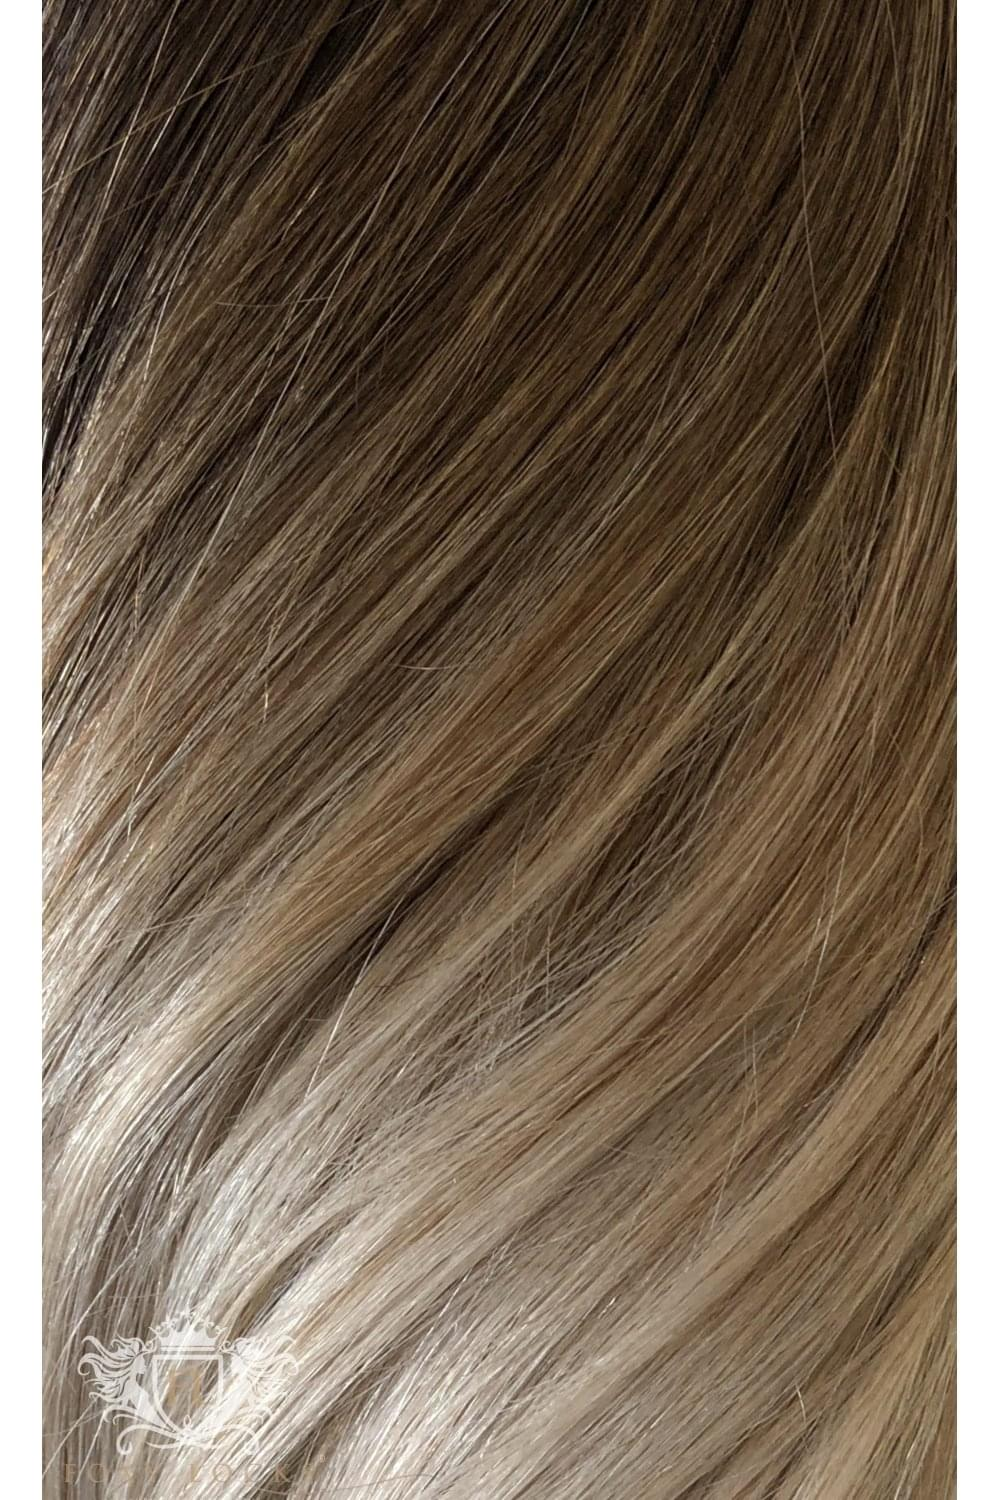 Vanilla Frappe Superior 22 Seamless Clip In Human Hair Extensions